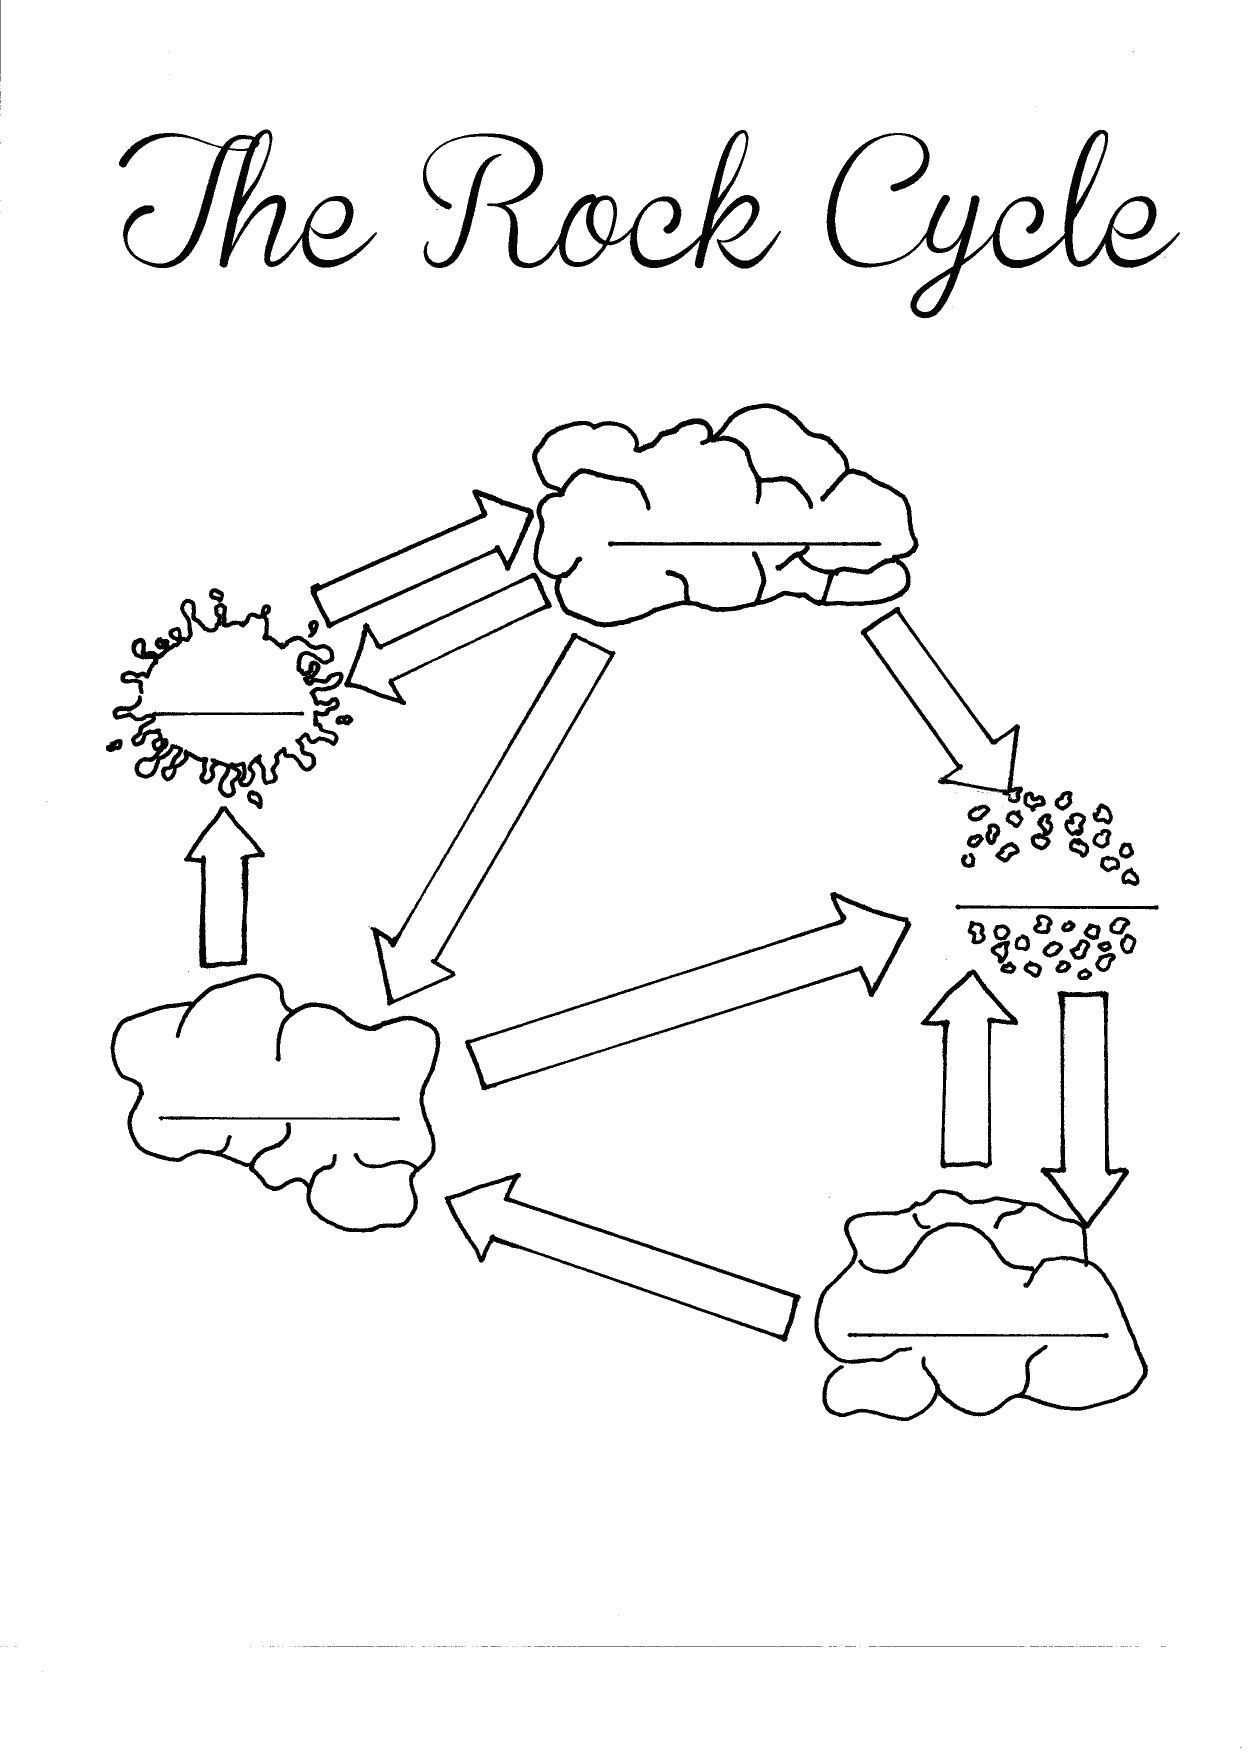 Rock Cycle Worksheet High School Pin by Megan Escobar Olsen On Teaching Middle School